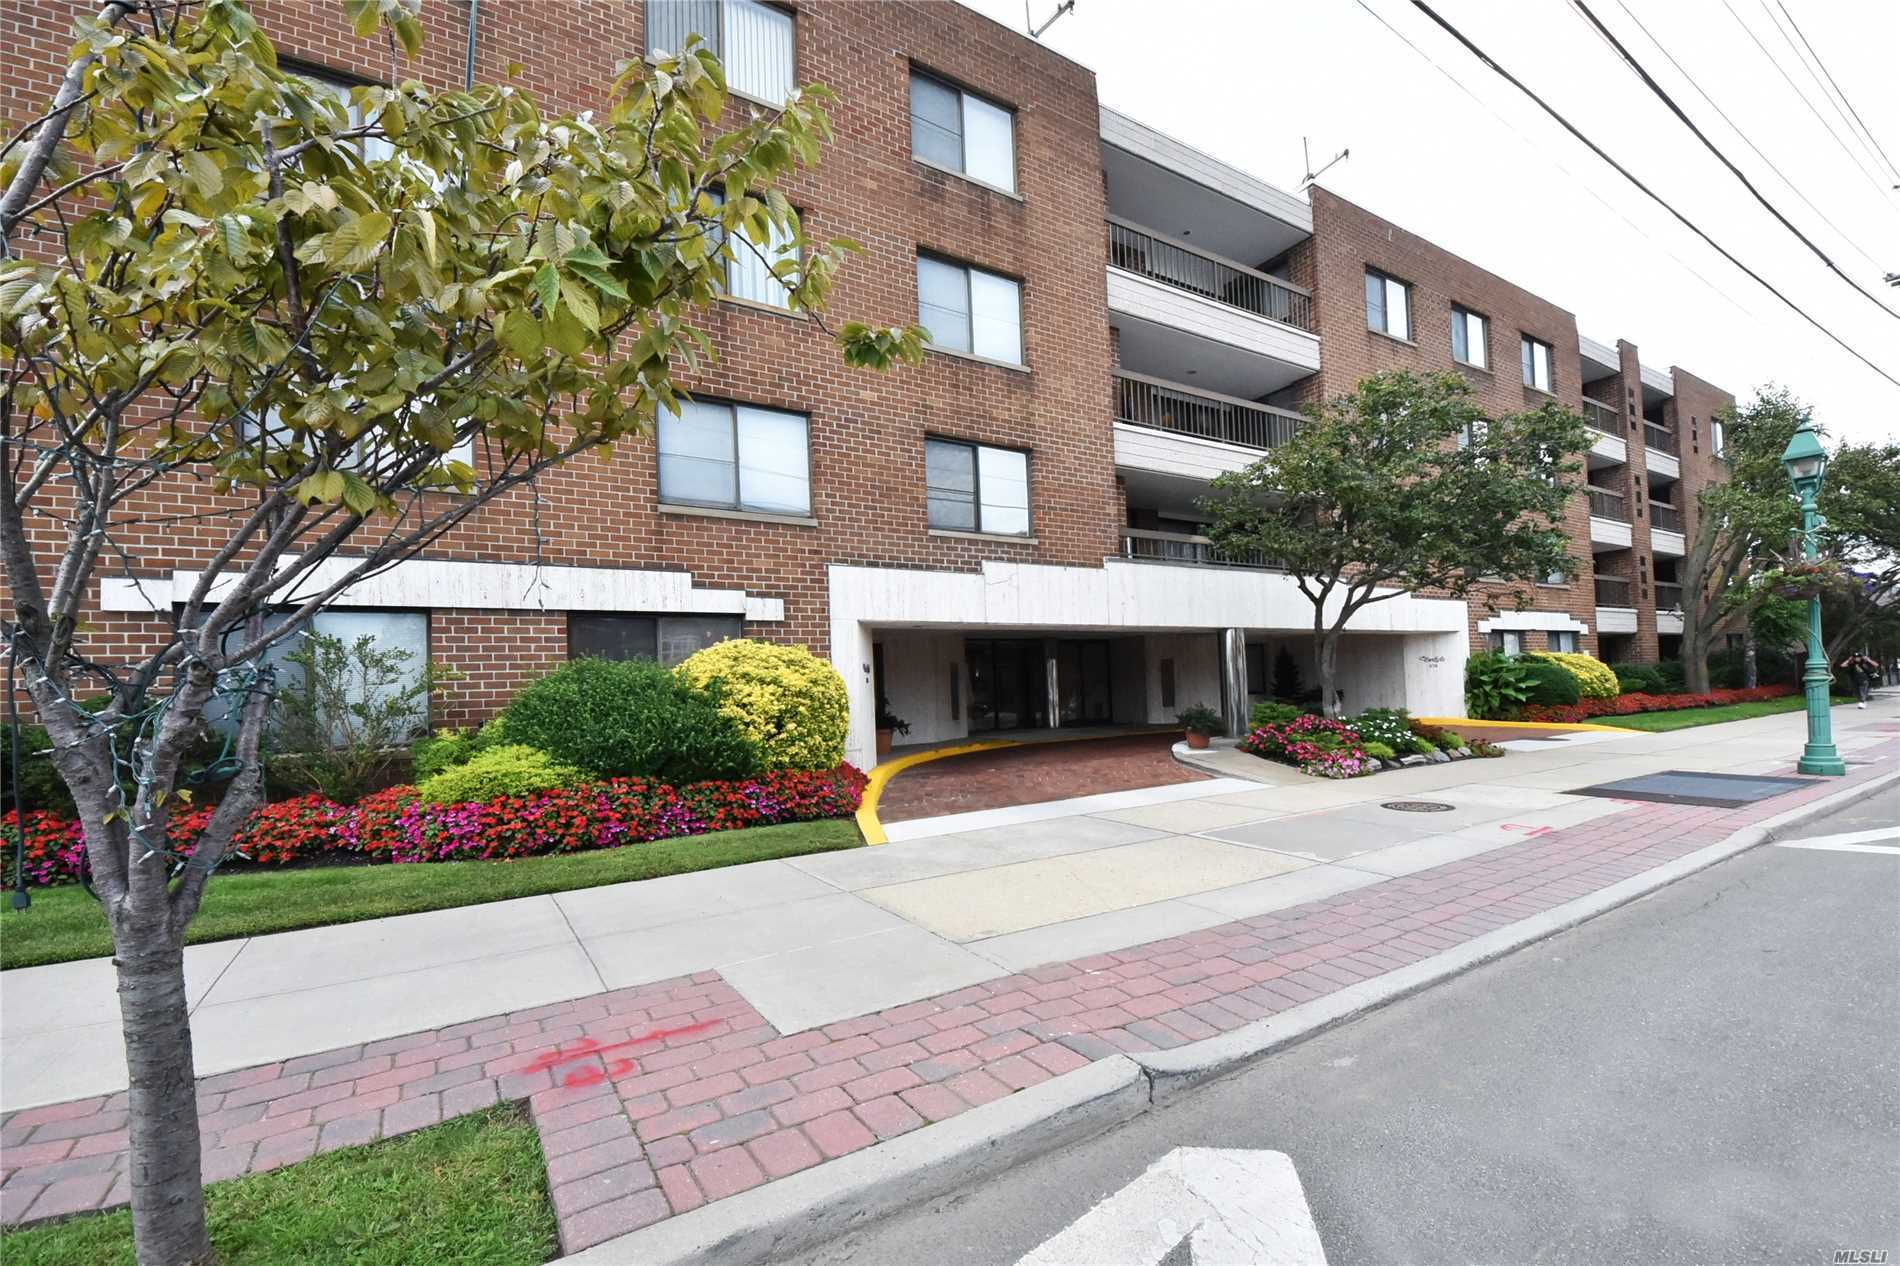 Beautiful Fully Renovated Condo In The Heart Of Lawrence, Granite Kitchen With 2 Sinks, Hw Floors, Terrace, Doorman,  Elevator Building, Underground Parking, Washer And Dryer In Unit, Close To All, Move Right In!!!